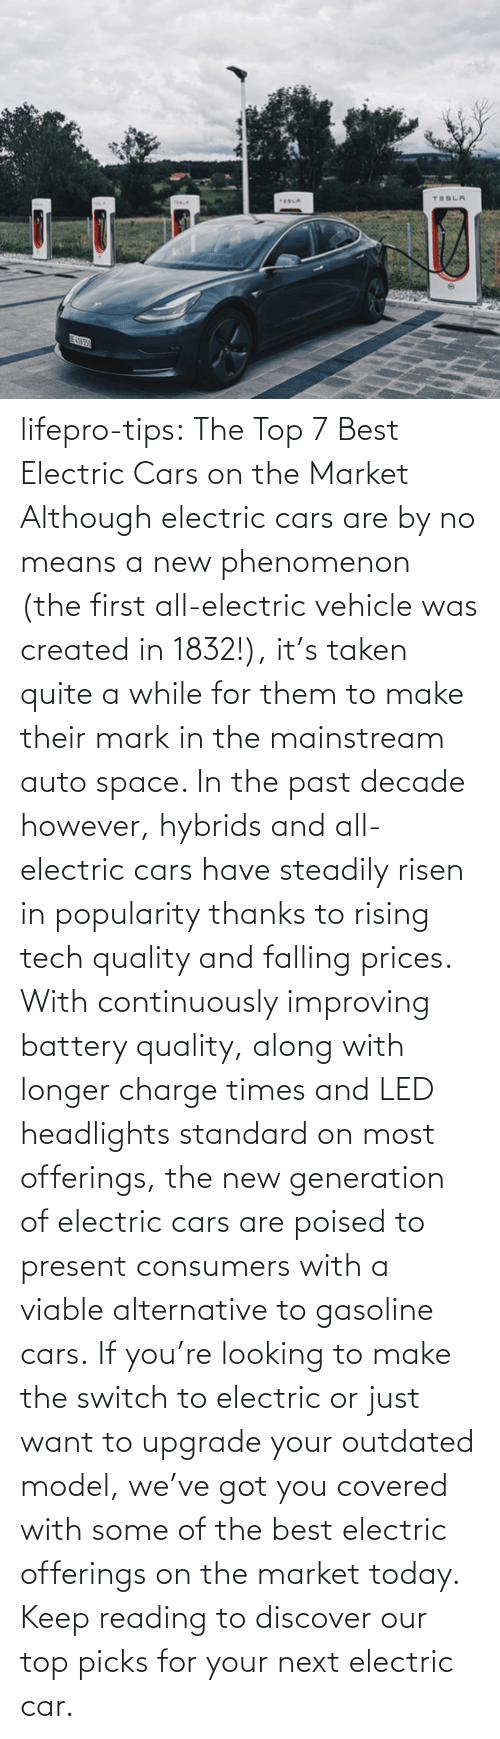 reading: lifepro-tips: The Top 7 Best Electric Cars on the Market   Although electric cars are by no means a new phenomenon (the first all-electric vehicle was created in 1832!), it's taken quite a while for them to make their mark in the mainstream auto space. In the past decade however, hybrids and all-electric cars have steadily risen in popularity thanks to rising tech quality and falling prices. With continuously improving battery quality, along with longer charge times and LED headlights standard on most offerings, the new generation of electric cars are poised to present consumers with a viable alternative to gasoline cars. If you're looking to make the switch to electric or just want to upgrade your outdated model, we've got you covered with some of the best electric offerings on the market today. Keep reading to discover our top picks for your next electric car.